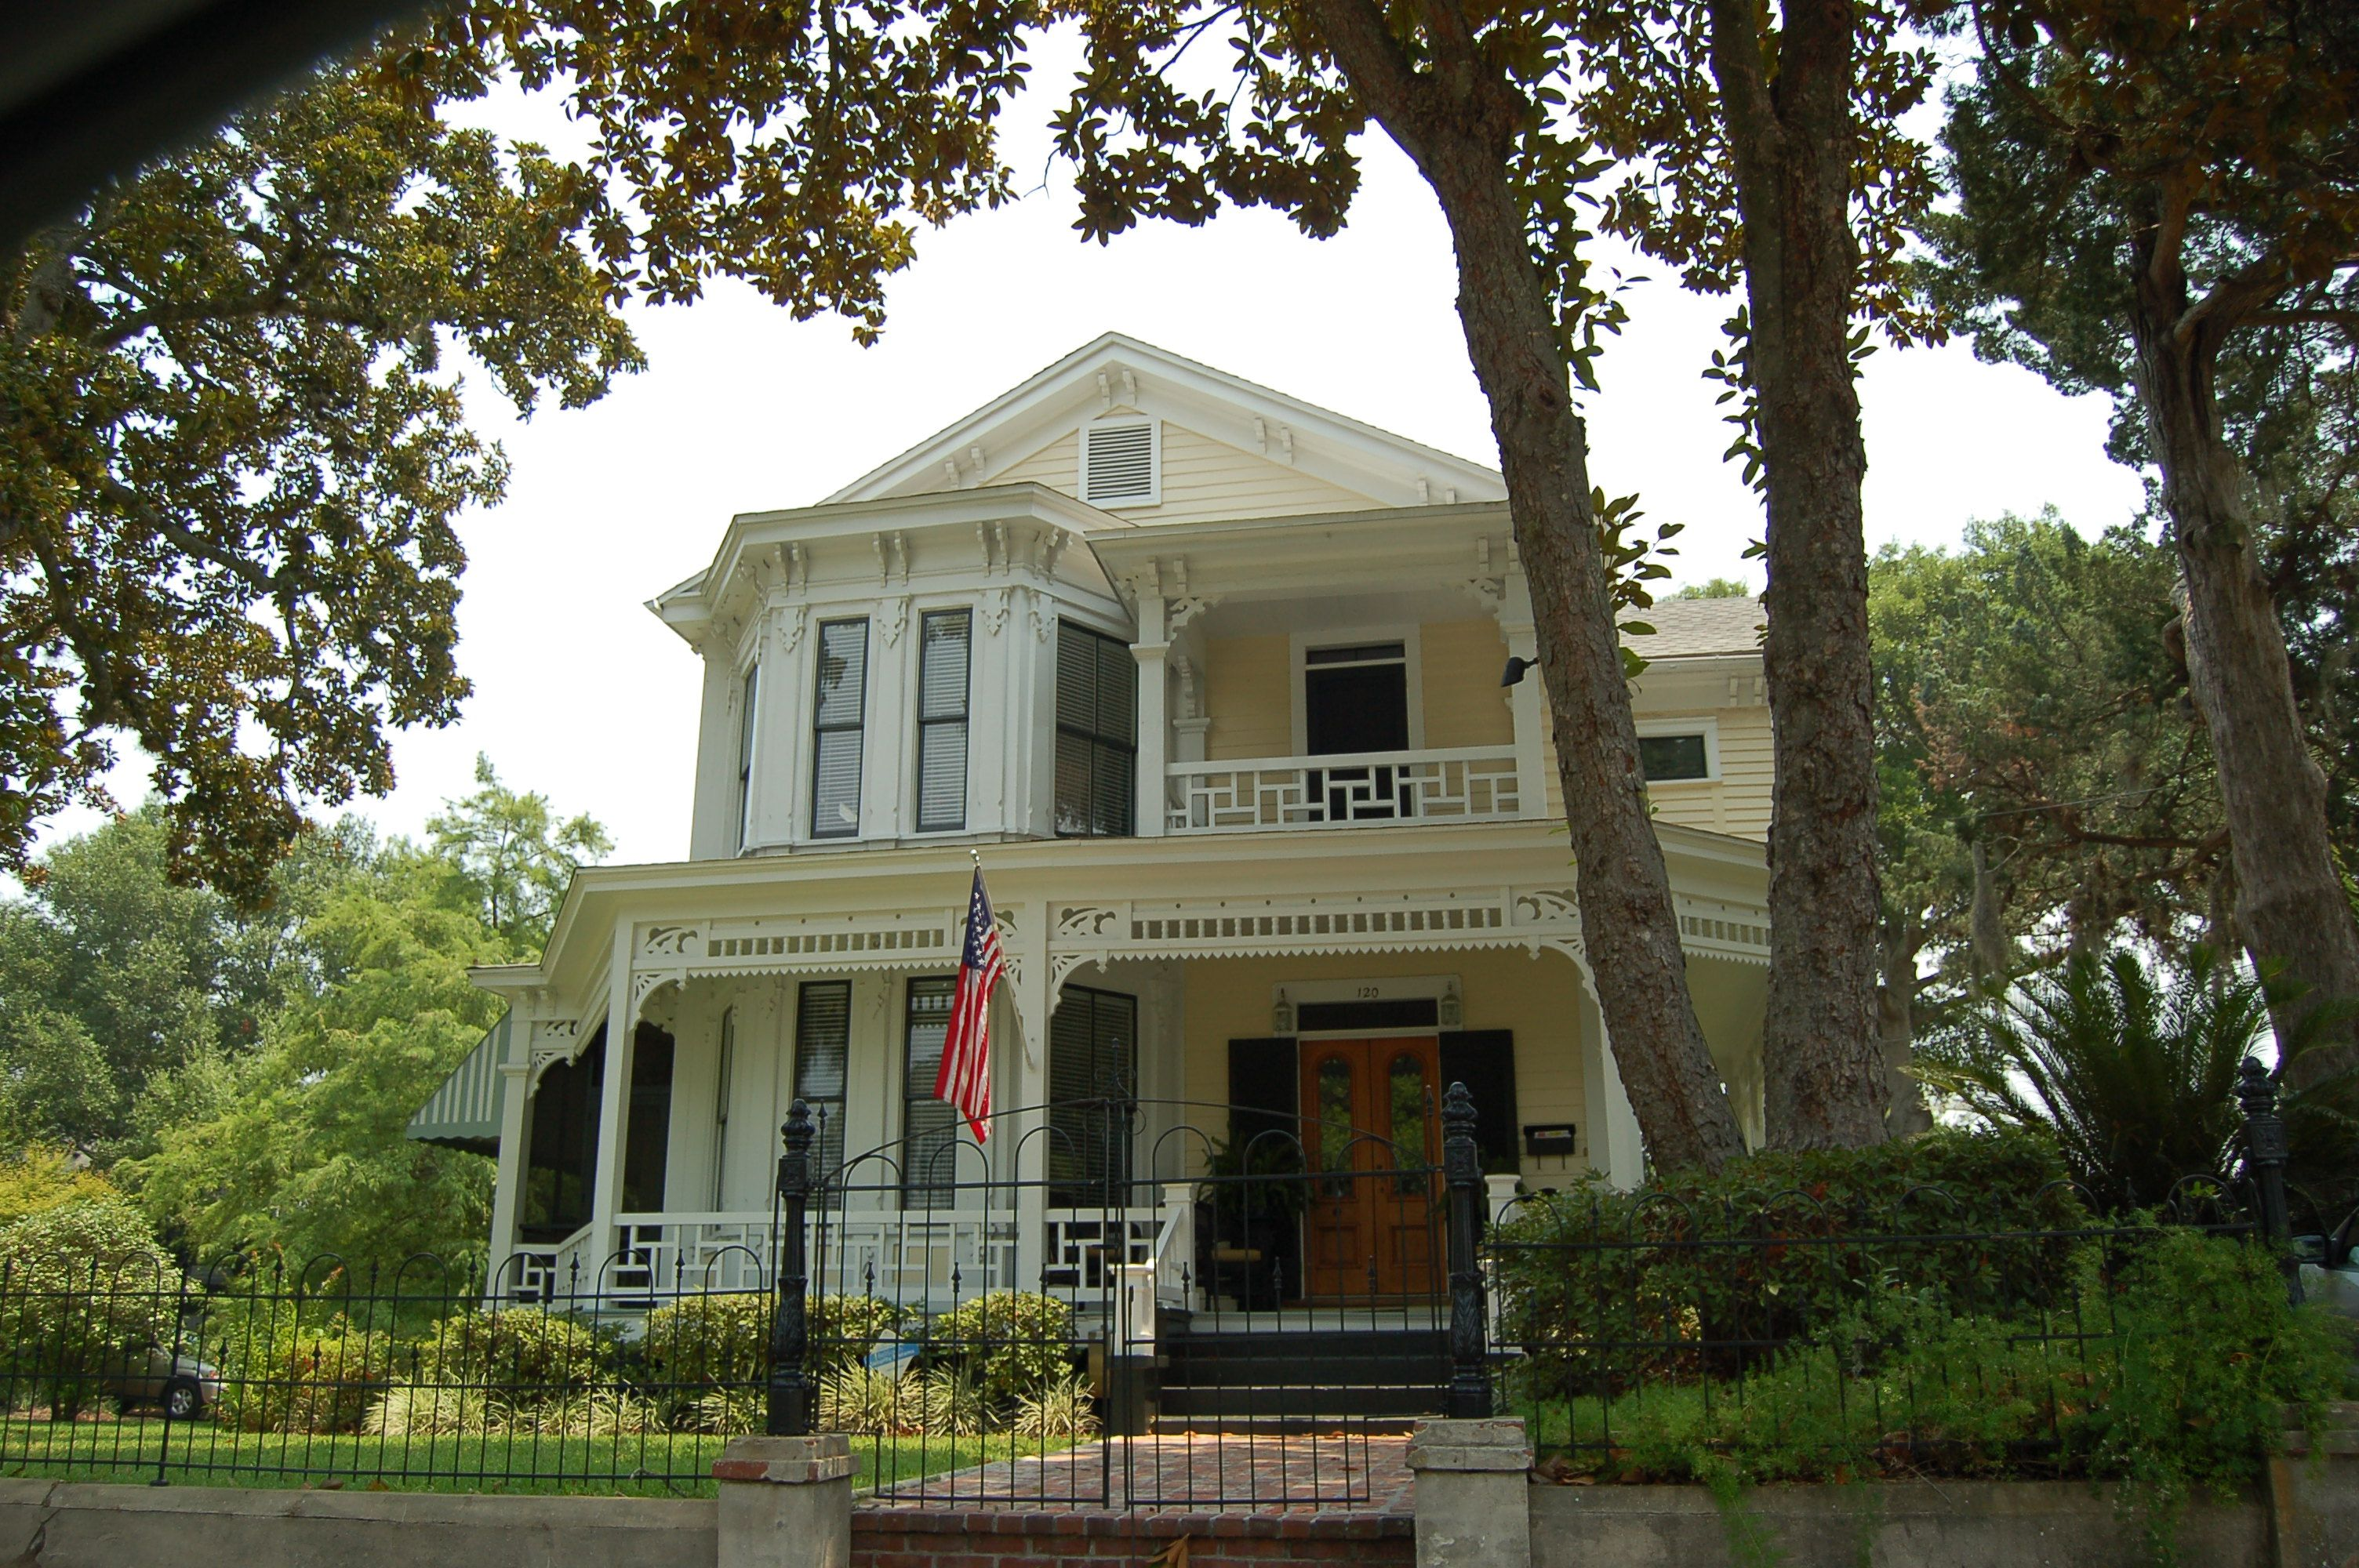 Architecture of the old south old southern homes pinterest for Southern home